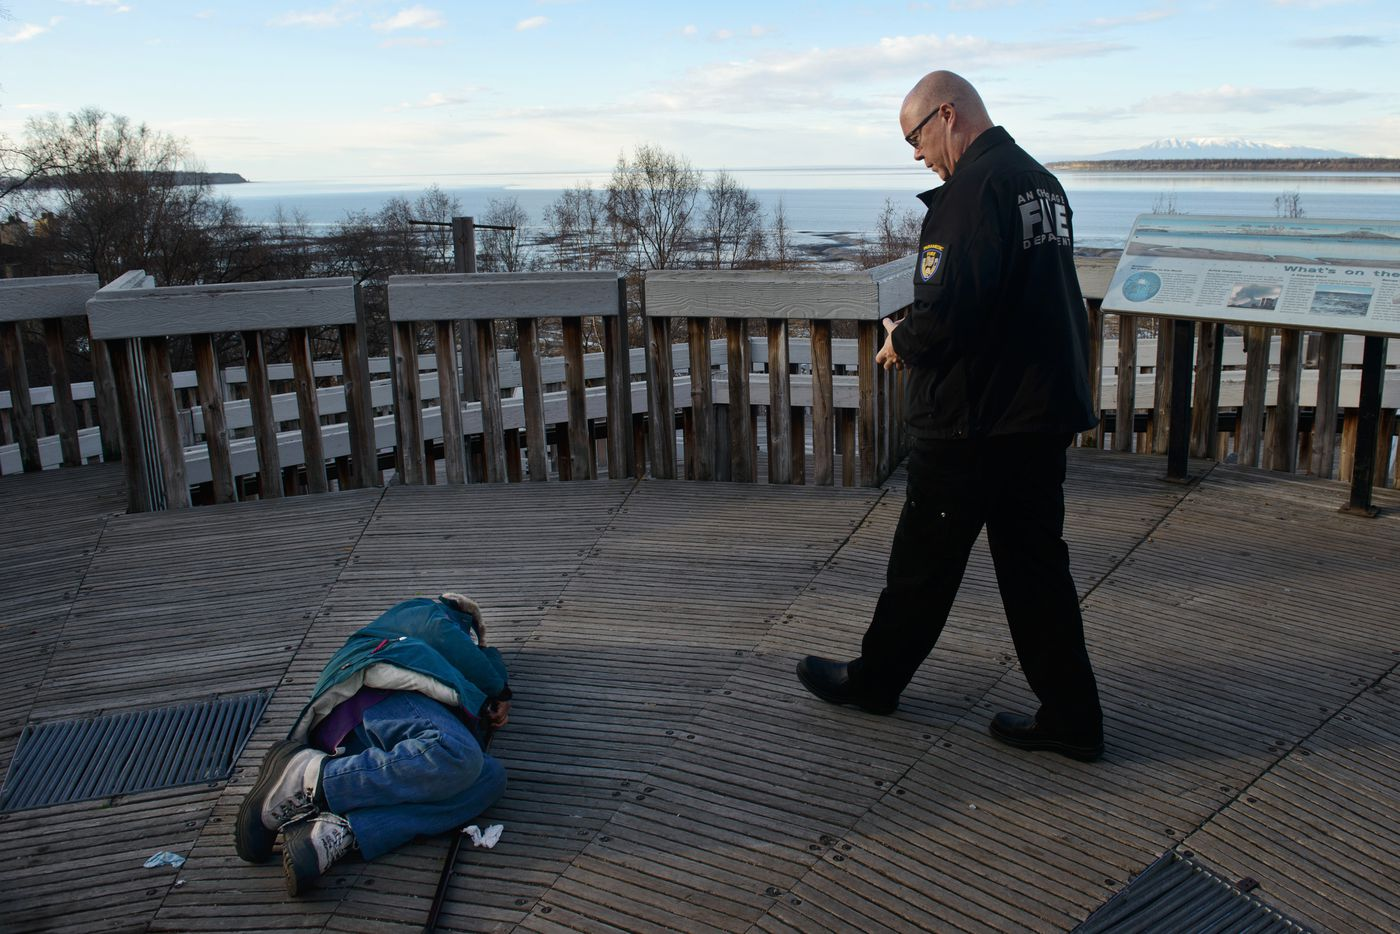 Anchorage Fire Deparment Battalion Chief Mike Crotty approaches a woman laying on the deck beneath a statue of Captain Cook in downtown Anchorage. Crotty, who supervises medics on the AFD staff, talked to a Downtown Security Ambassador to arrange for the woman o be transported by Anchorage Safety Patrol. Photographed on Saturday, November 8, 2014. Marc Lester / ADN